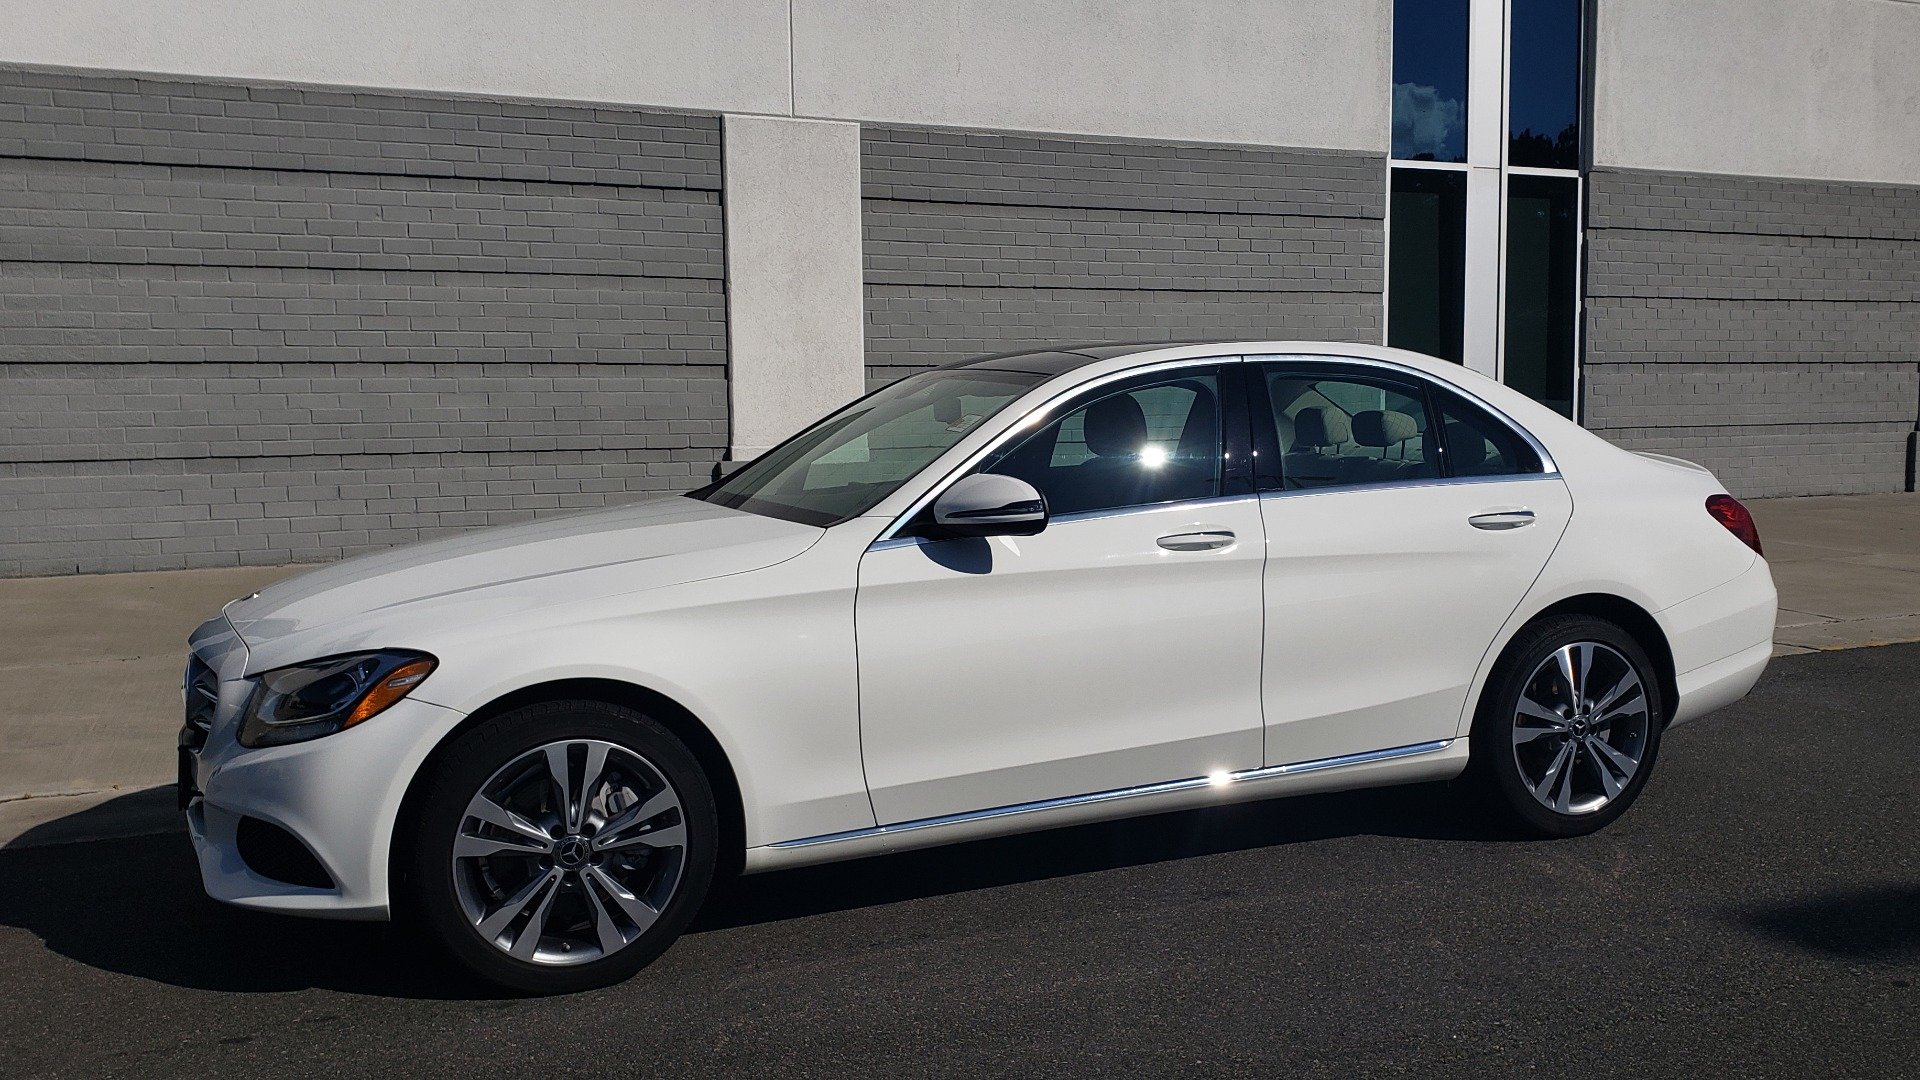 Used 2018 Mercedes-Benz C-Class C 300 4MATIC PREMIUM / APPLE CARPLAY / PANO-ROOF / REARVIEW for sale $33,795 at Formula Imports in Charlotte NC 28227 2